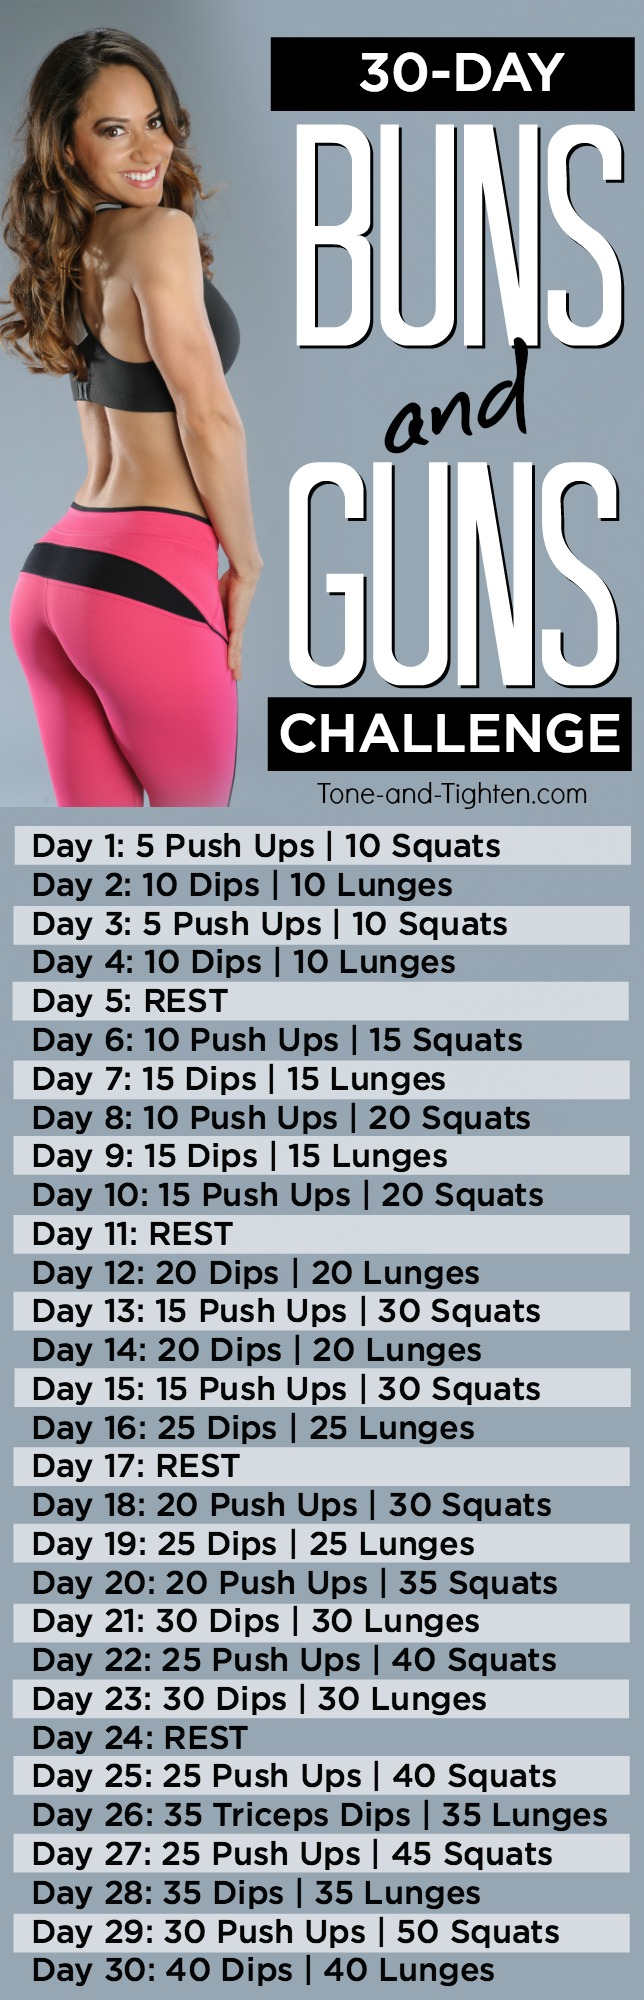 30-Day challenge to tone your arms and sculpt your butt! From Tone-and-Tighten.com